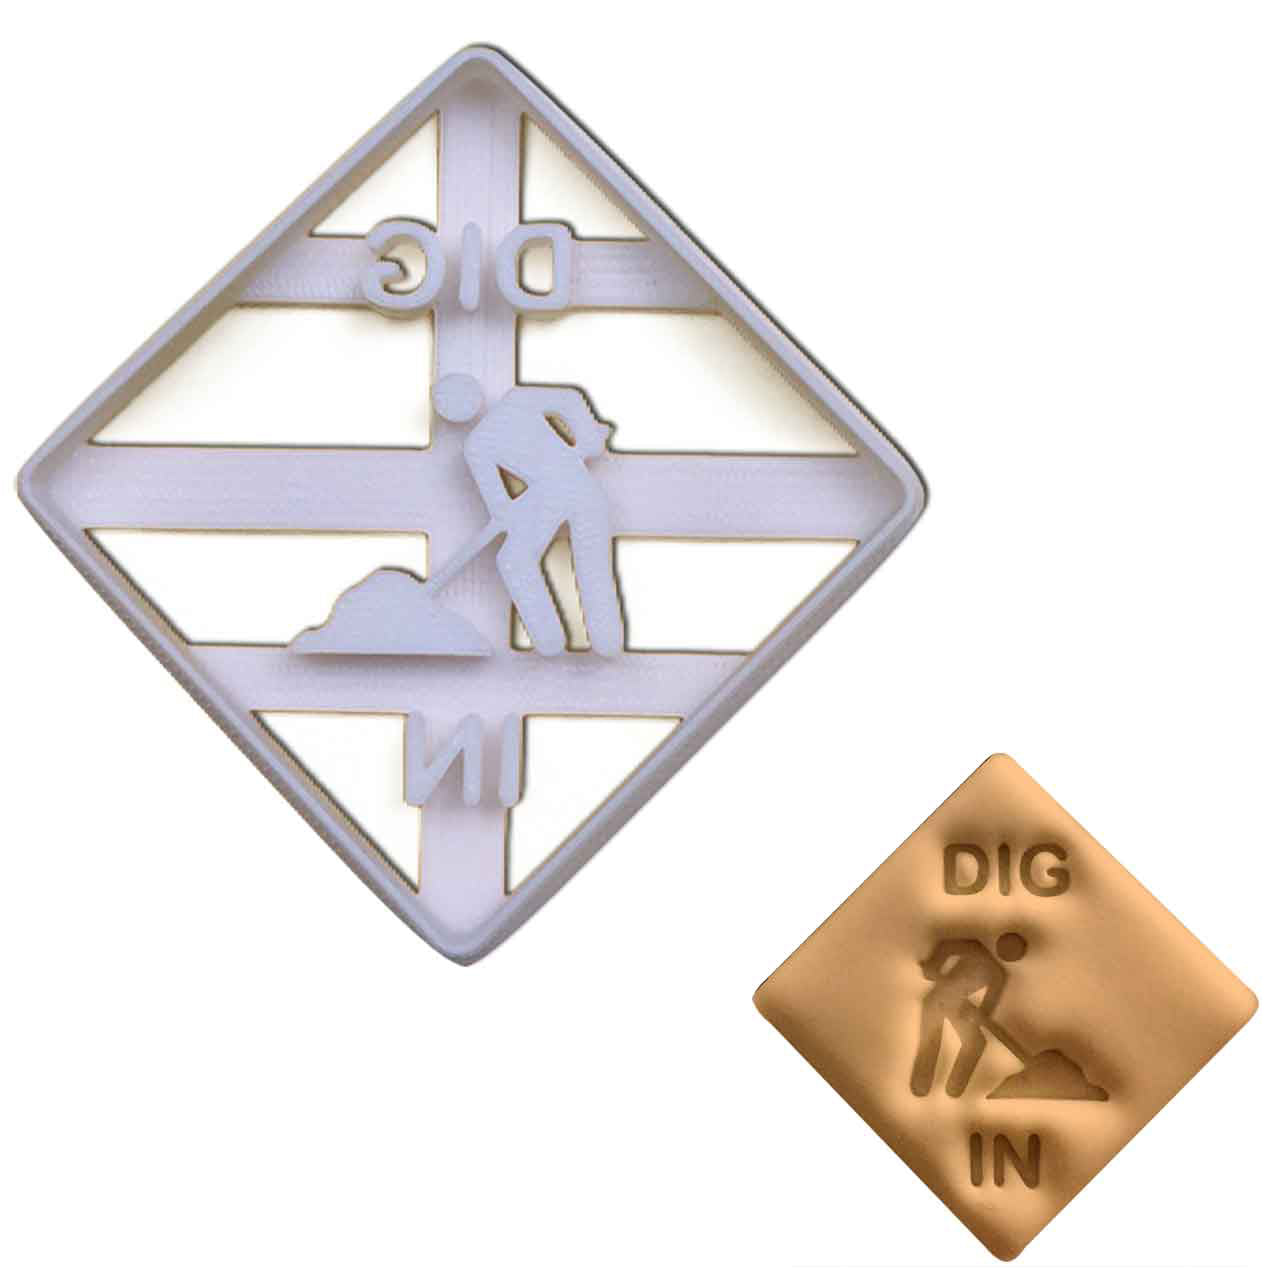 Dig In Signage cookie Cutter